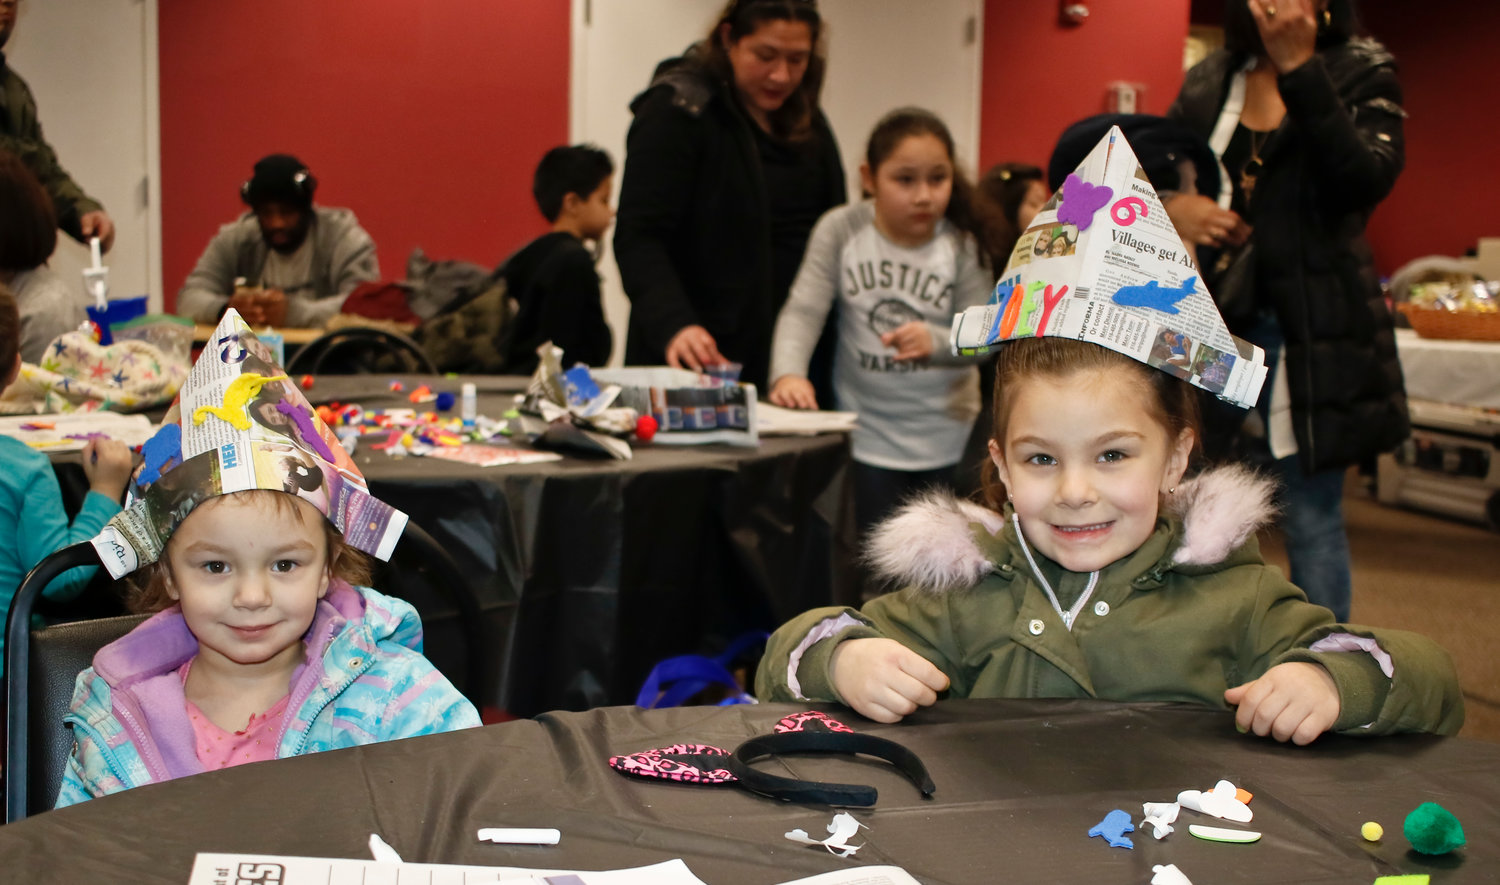 Leah and Zoey Macchia, of Wantagh, donned their decorated newspaper hats.